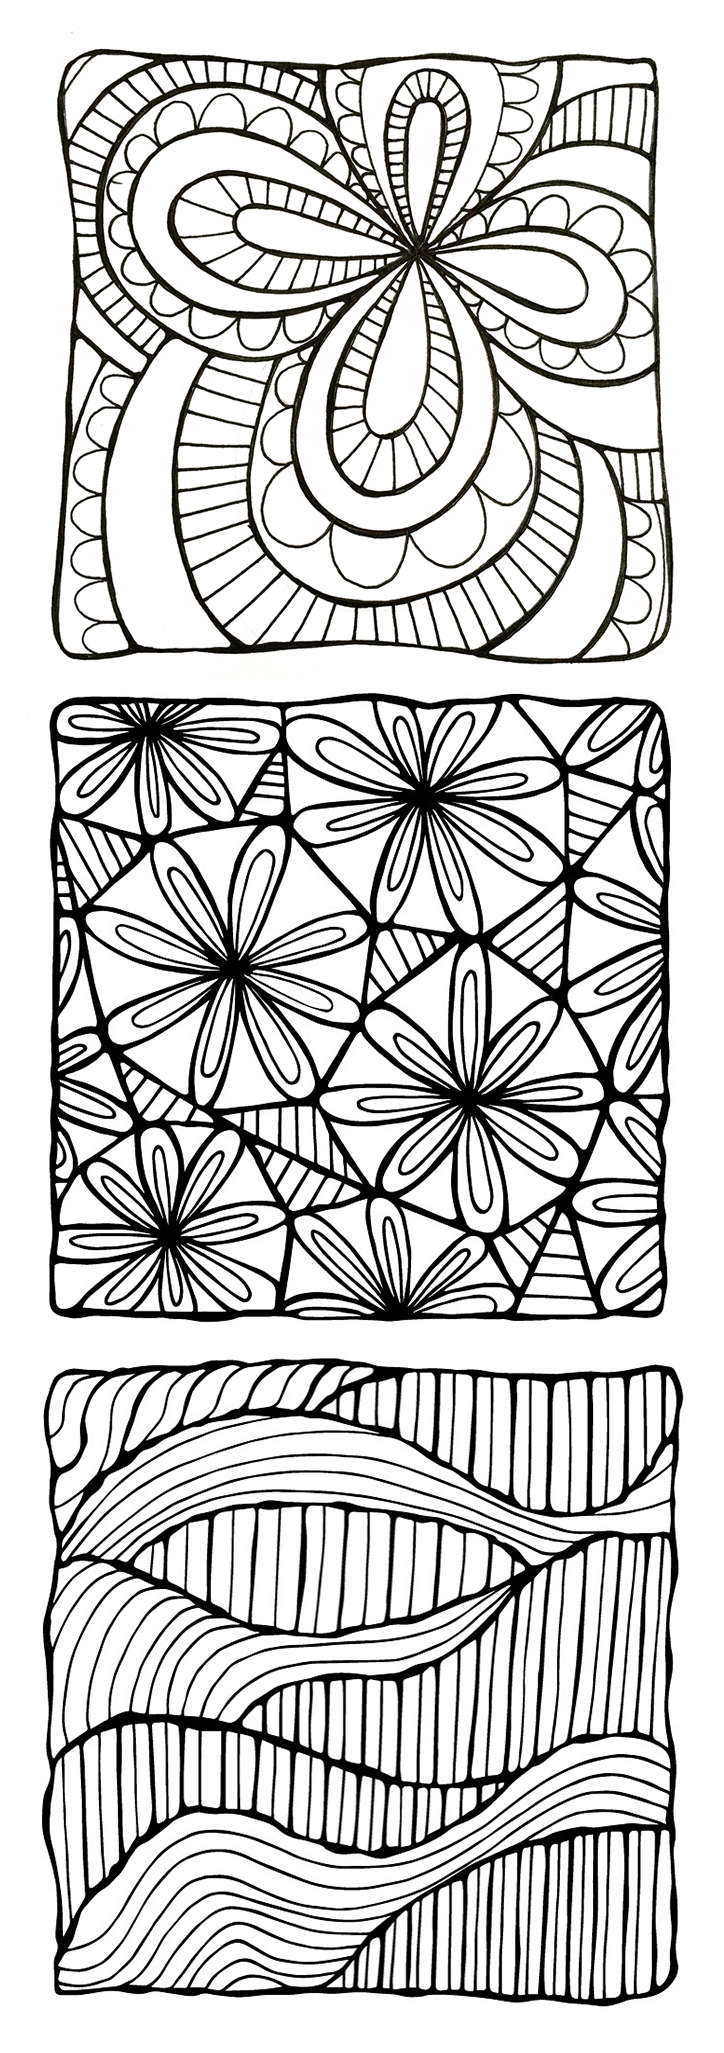 A selection of drawings I that I made for my forthcoming coloring calendar.